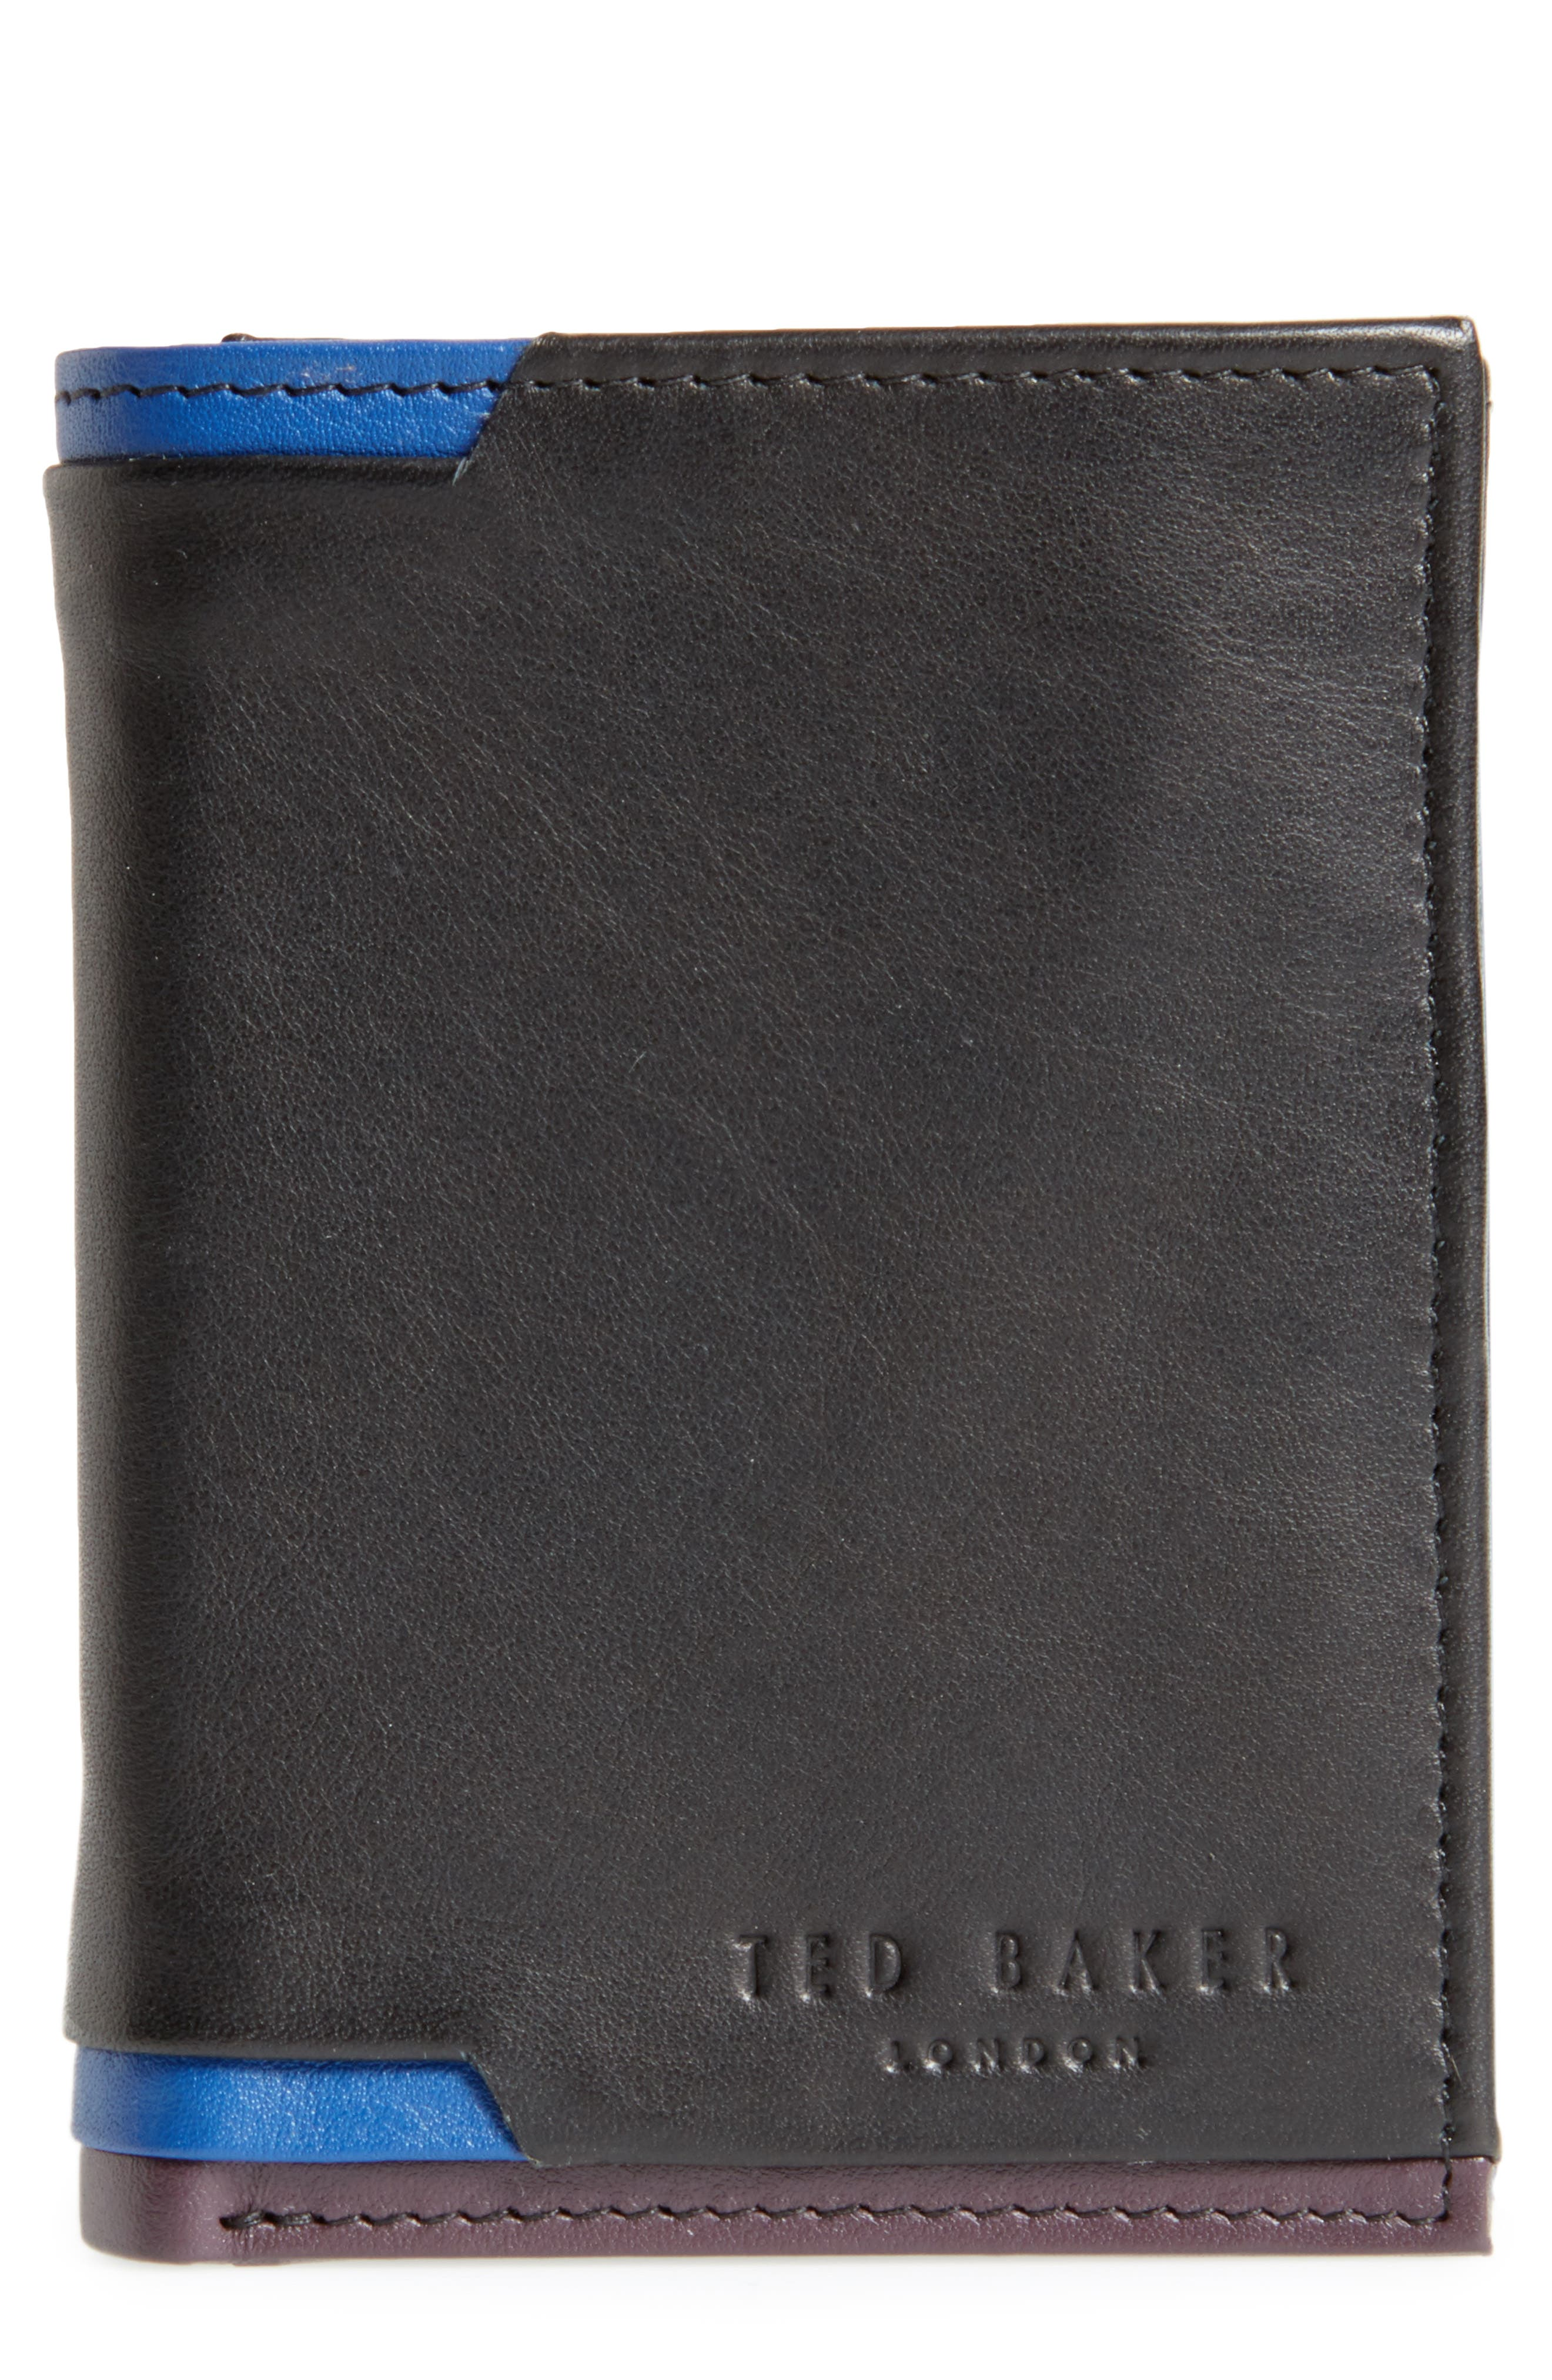 Vien Corner Detail Trifold Leather Wallet,                         Main,                         color, Black